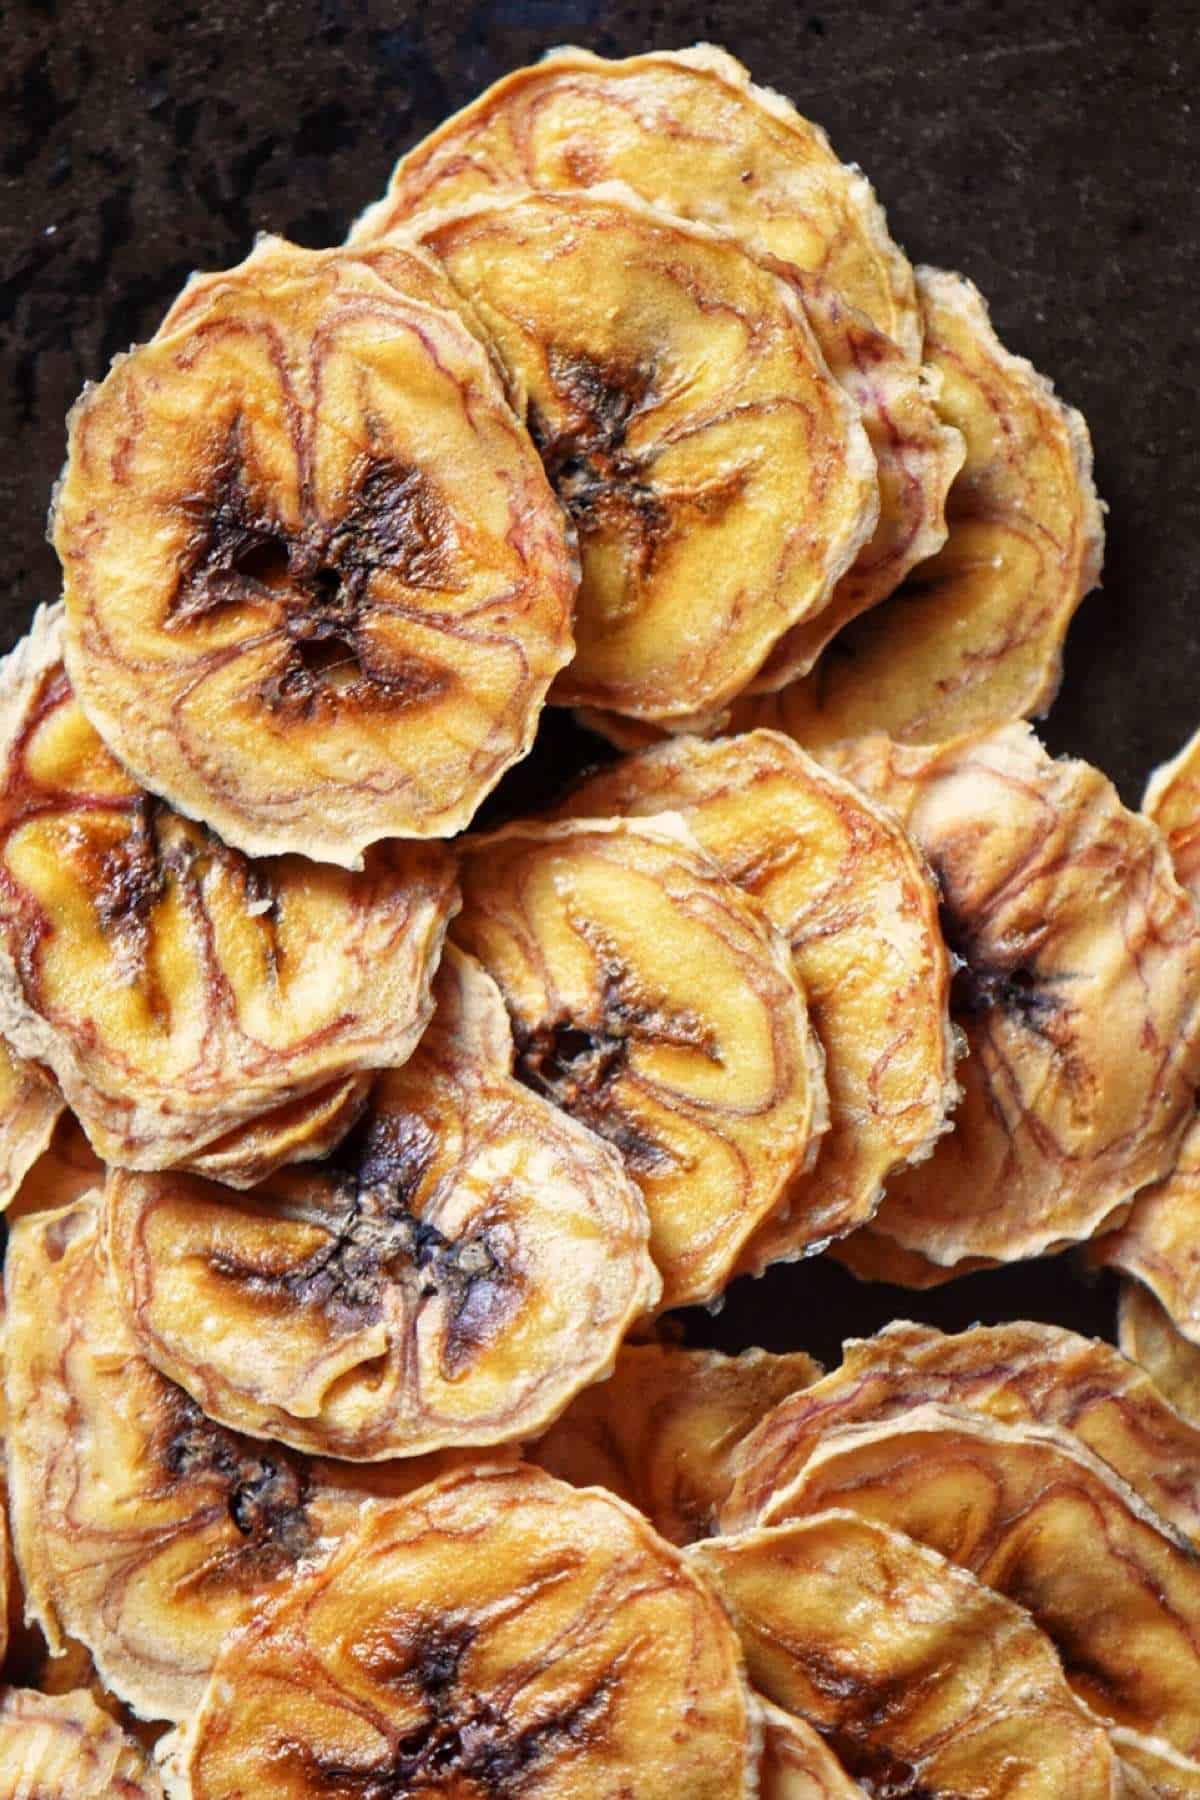 Thinly sliced homemade banana chips piled up high placed on a dark platter.